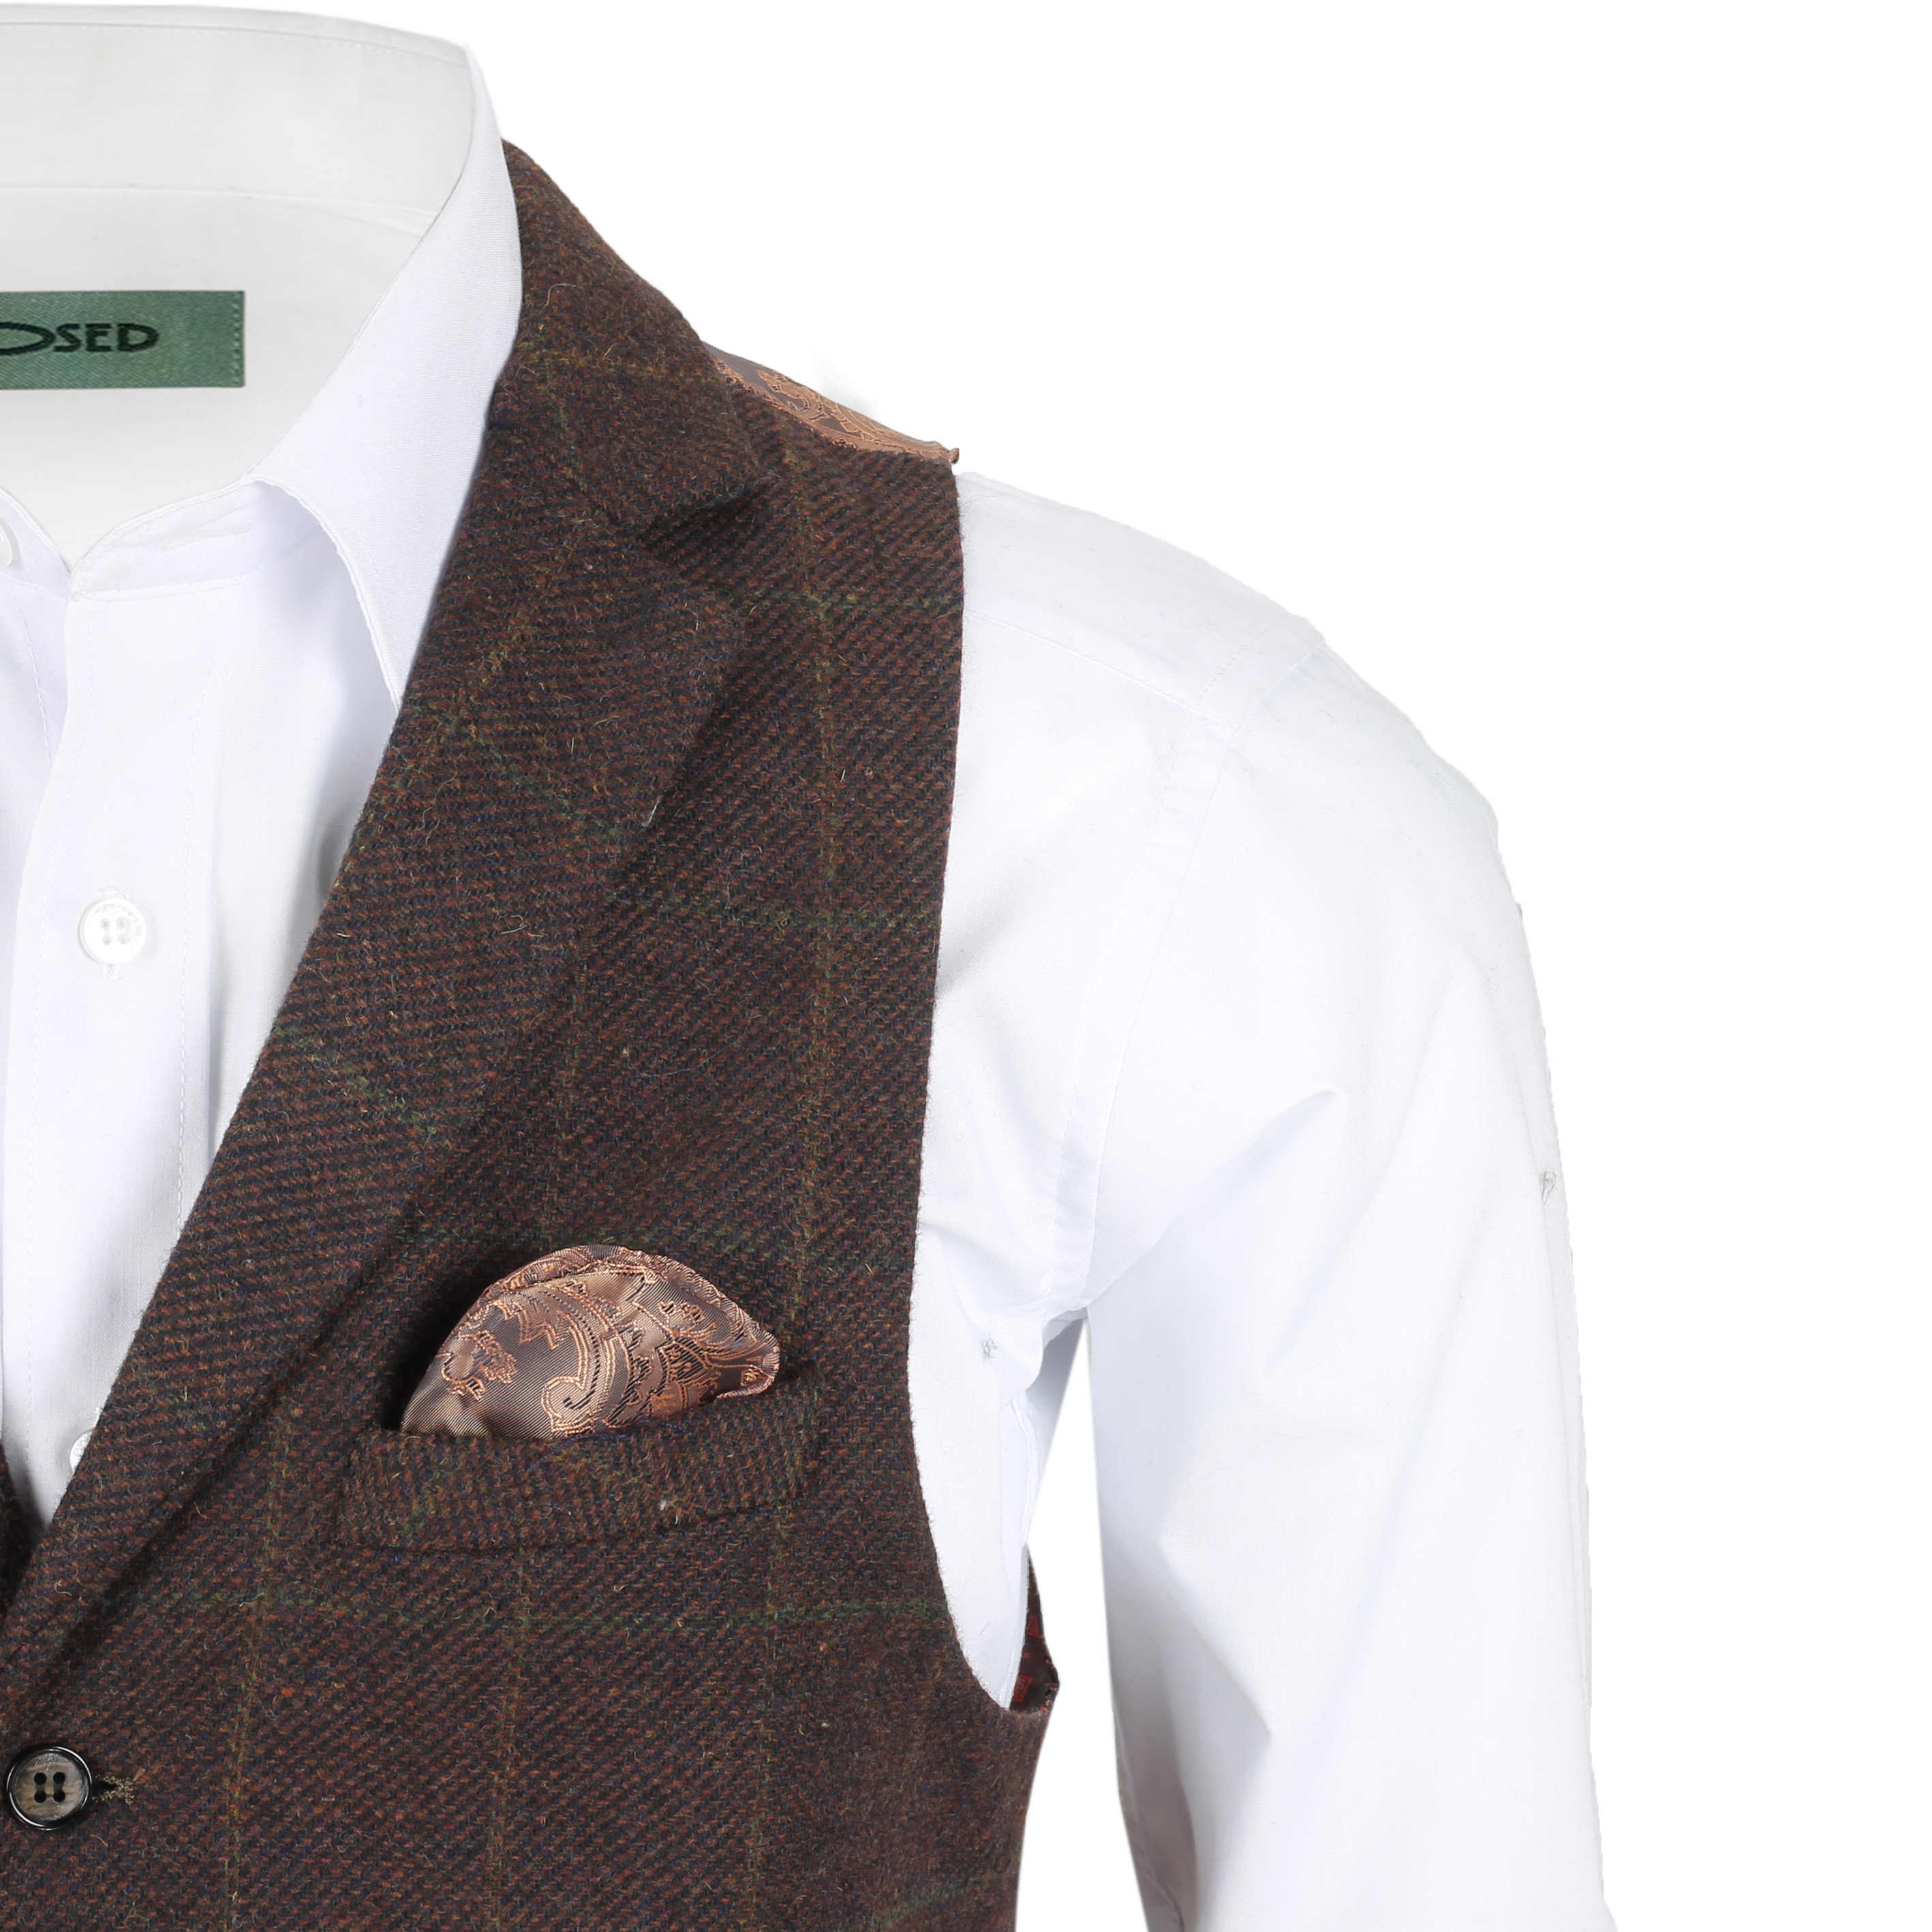 Mens-Tweed-Check-Waistcoat-Vintage-Herringbone-VelvetCollar-Lapel-Slim-Fit-Vest thumbnail 12